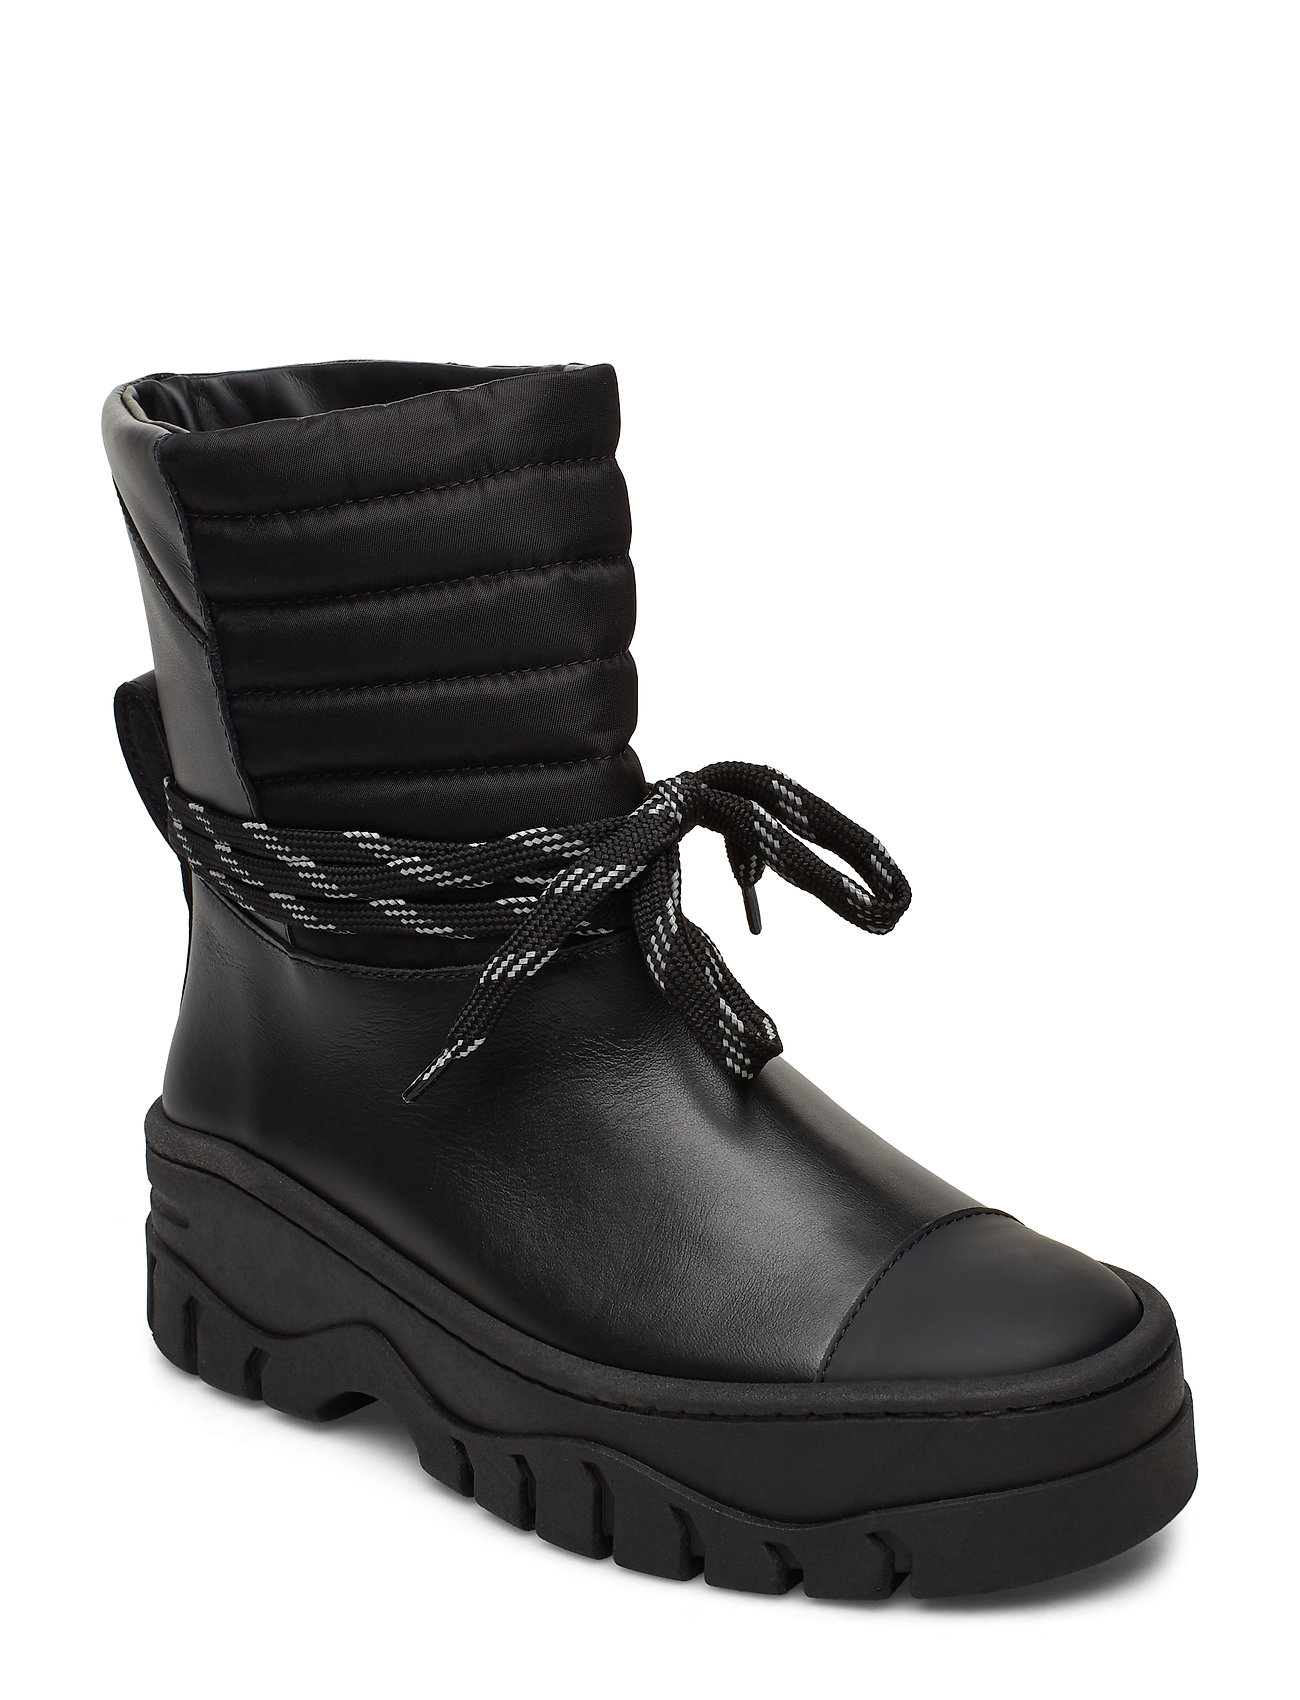 Image of Biker Shoes Boots Ankle Boots Ankle Boot - Flat Sort Ganni (3406242389)